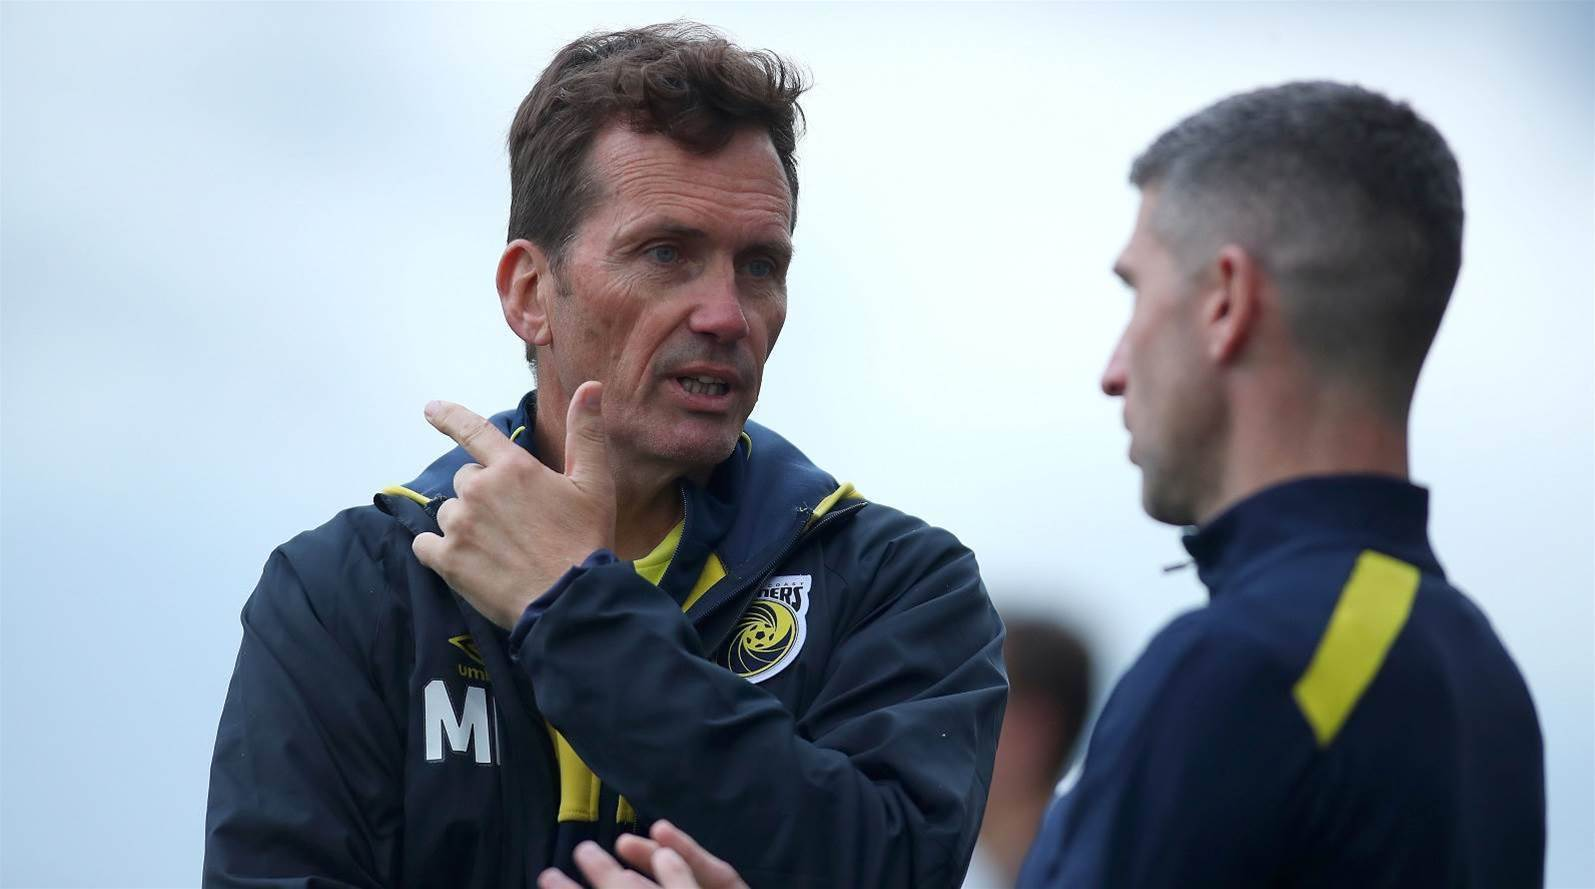 Mulvey: We don't talk about that anymore